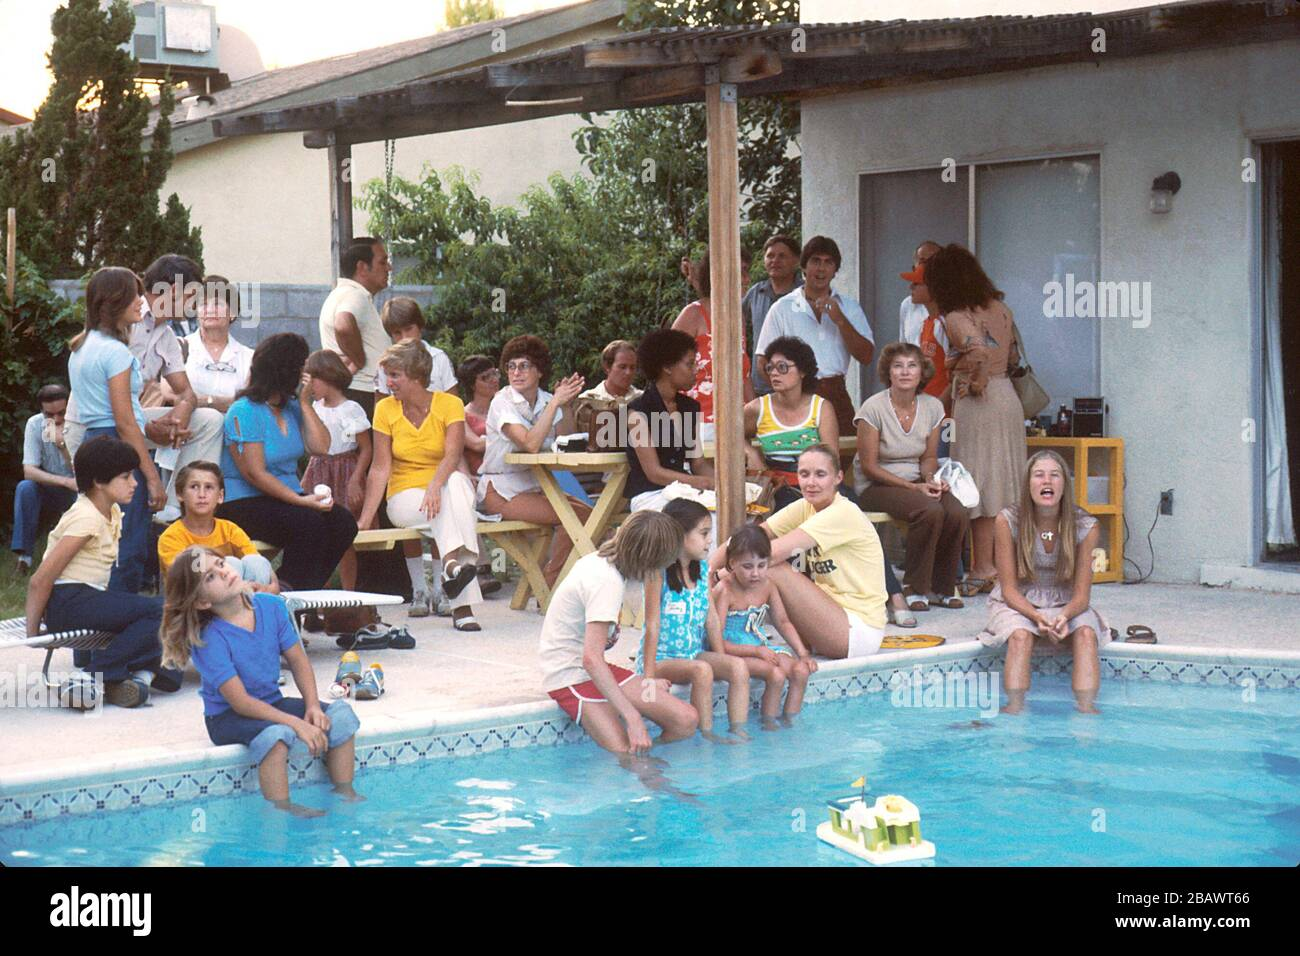 English Title Family Near A Pool Description A Large Group Of Adults And Children Sitting Around A Swimming Pool They Are Members Of A National Group Called The Candlelighters Which Gives Emotional